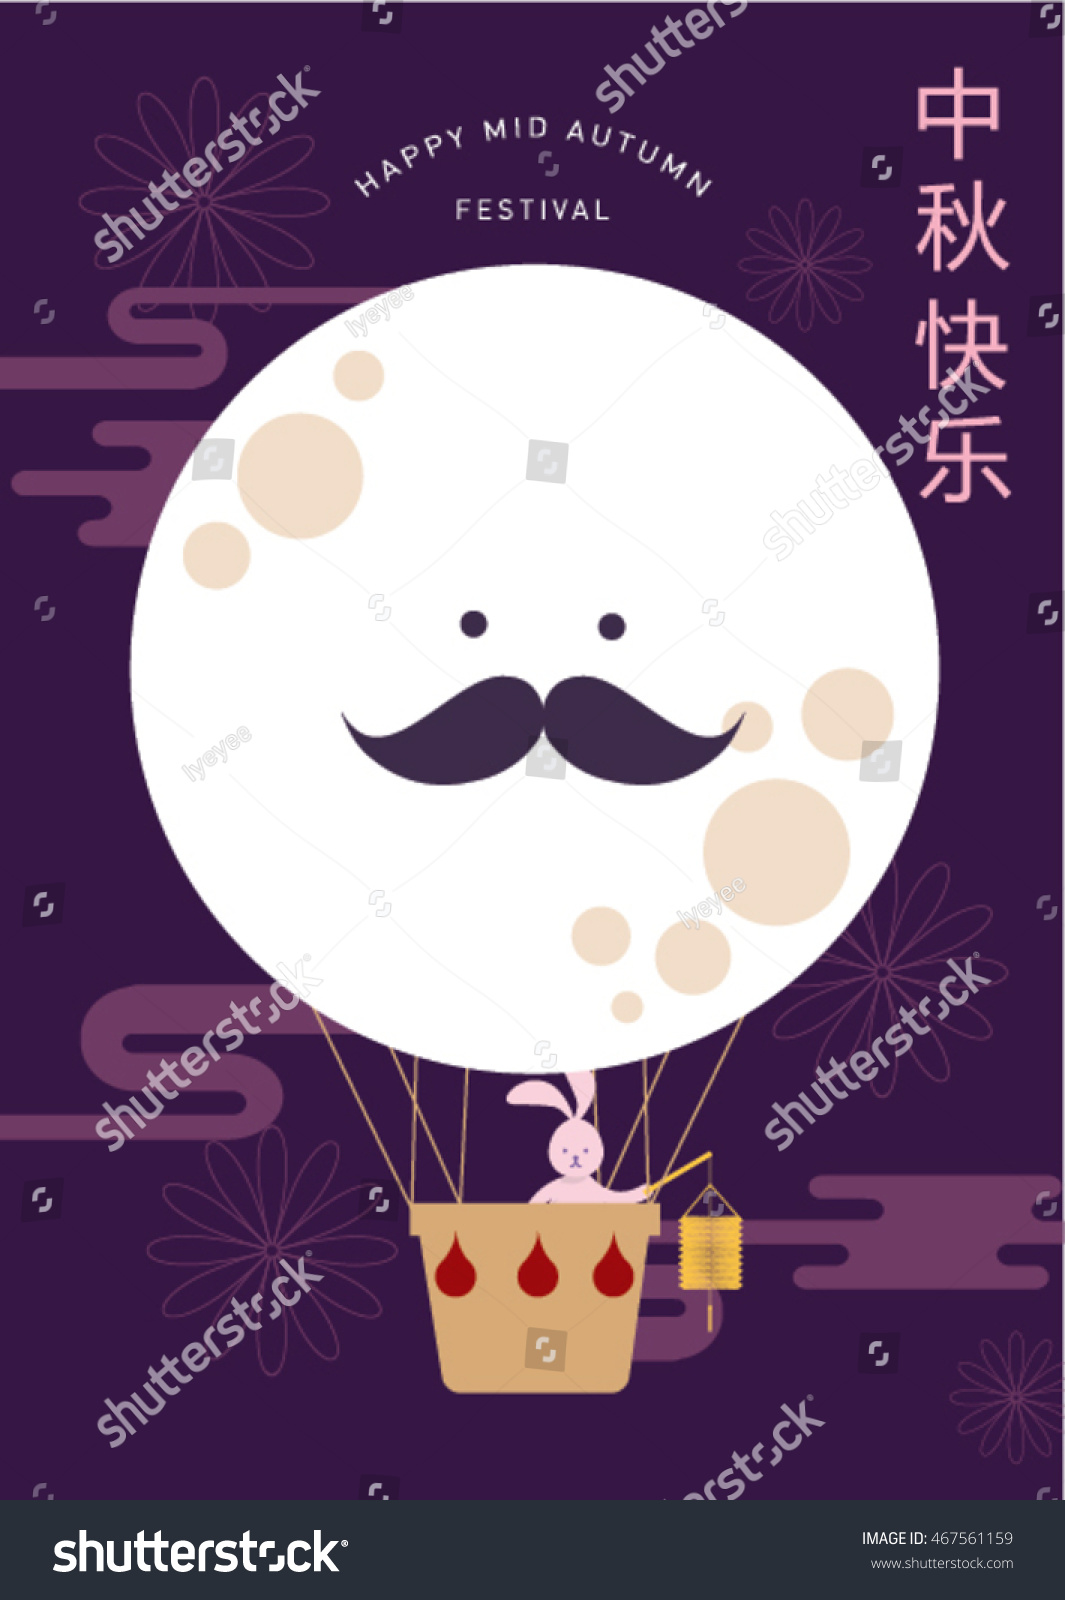 Moon hot air balloon mid autumn stock vector 467561159 shutterstock moon hot air balloon mid autumn festival greetings template vectorillustration with chinese characters kristyandbryce Choice Image